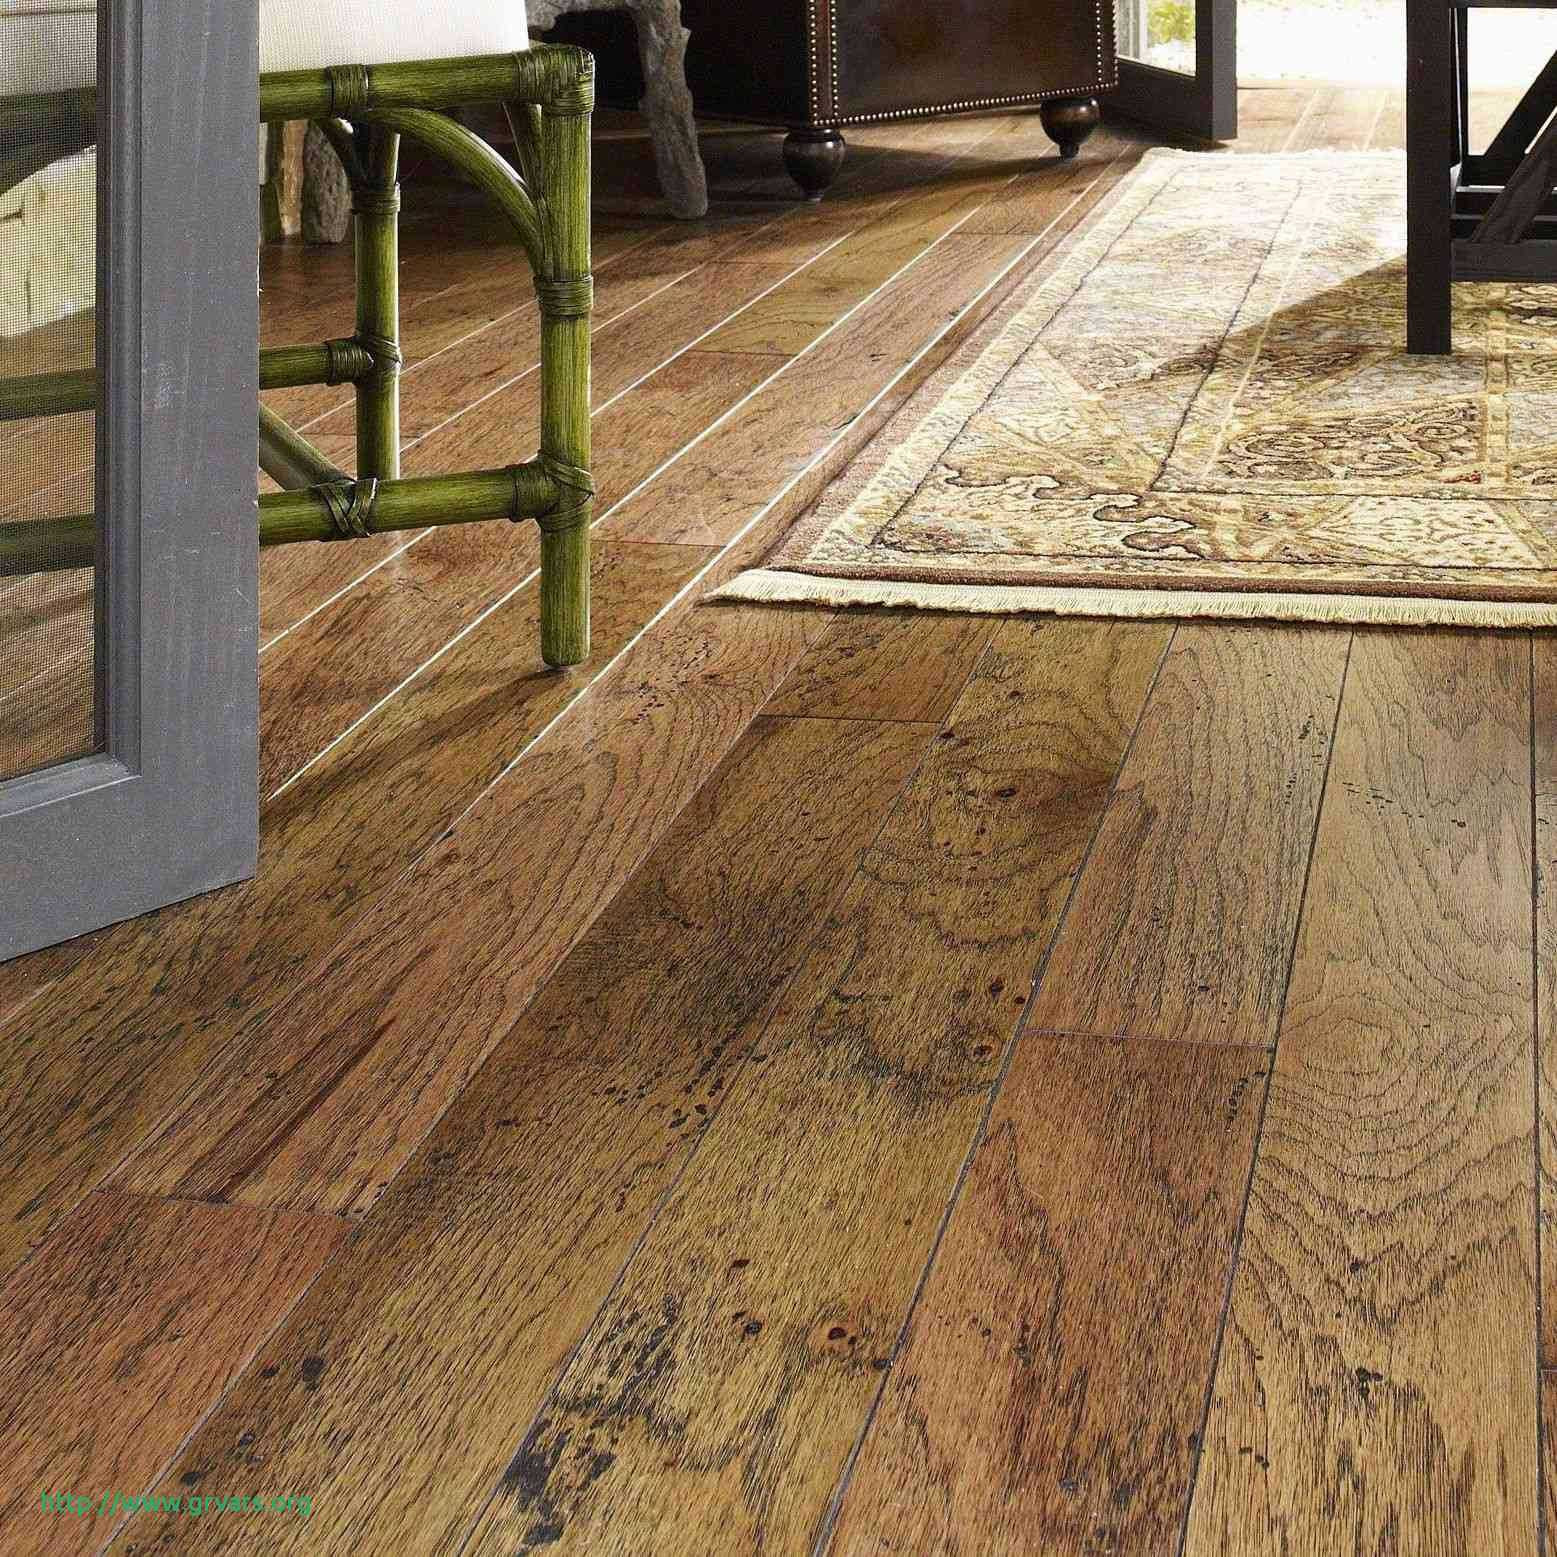 types of old hardwood floors of 19 luxe laying wood floors over concrete ideas blog with regard to hardwood floor designs new best type wood flooring best floor floor wood floor wood 0d putting